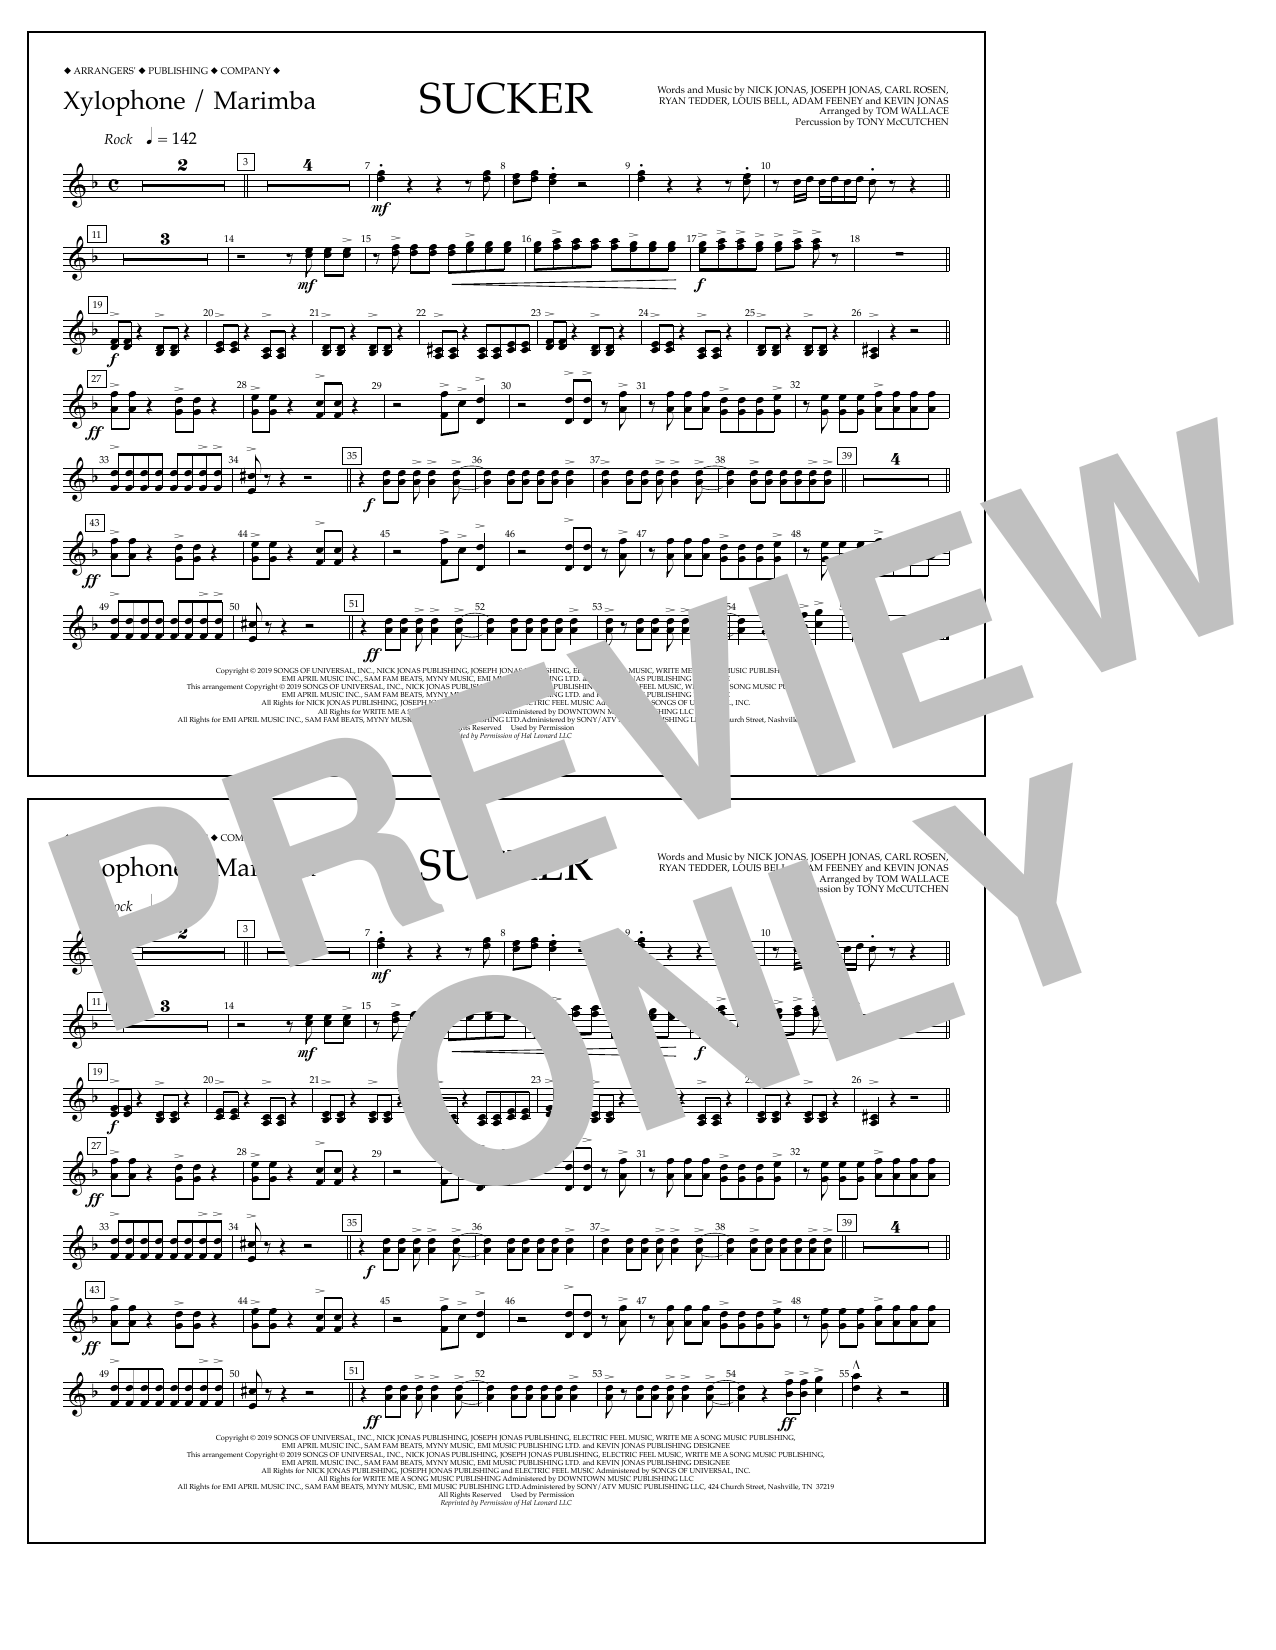 Jonas Brothers Sucker (arr. Tom Wallace) - Xylophone/Marimba sheet music notes and chords. Download Printable PDF.